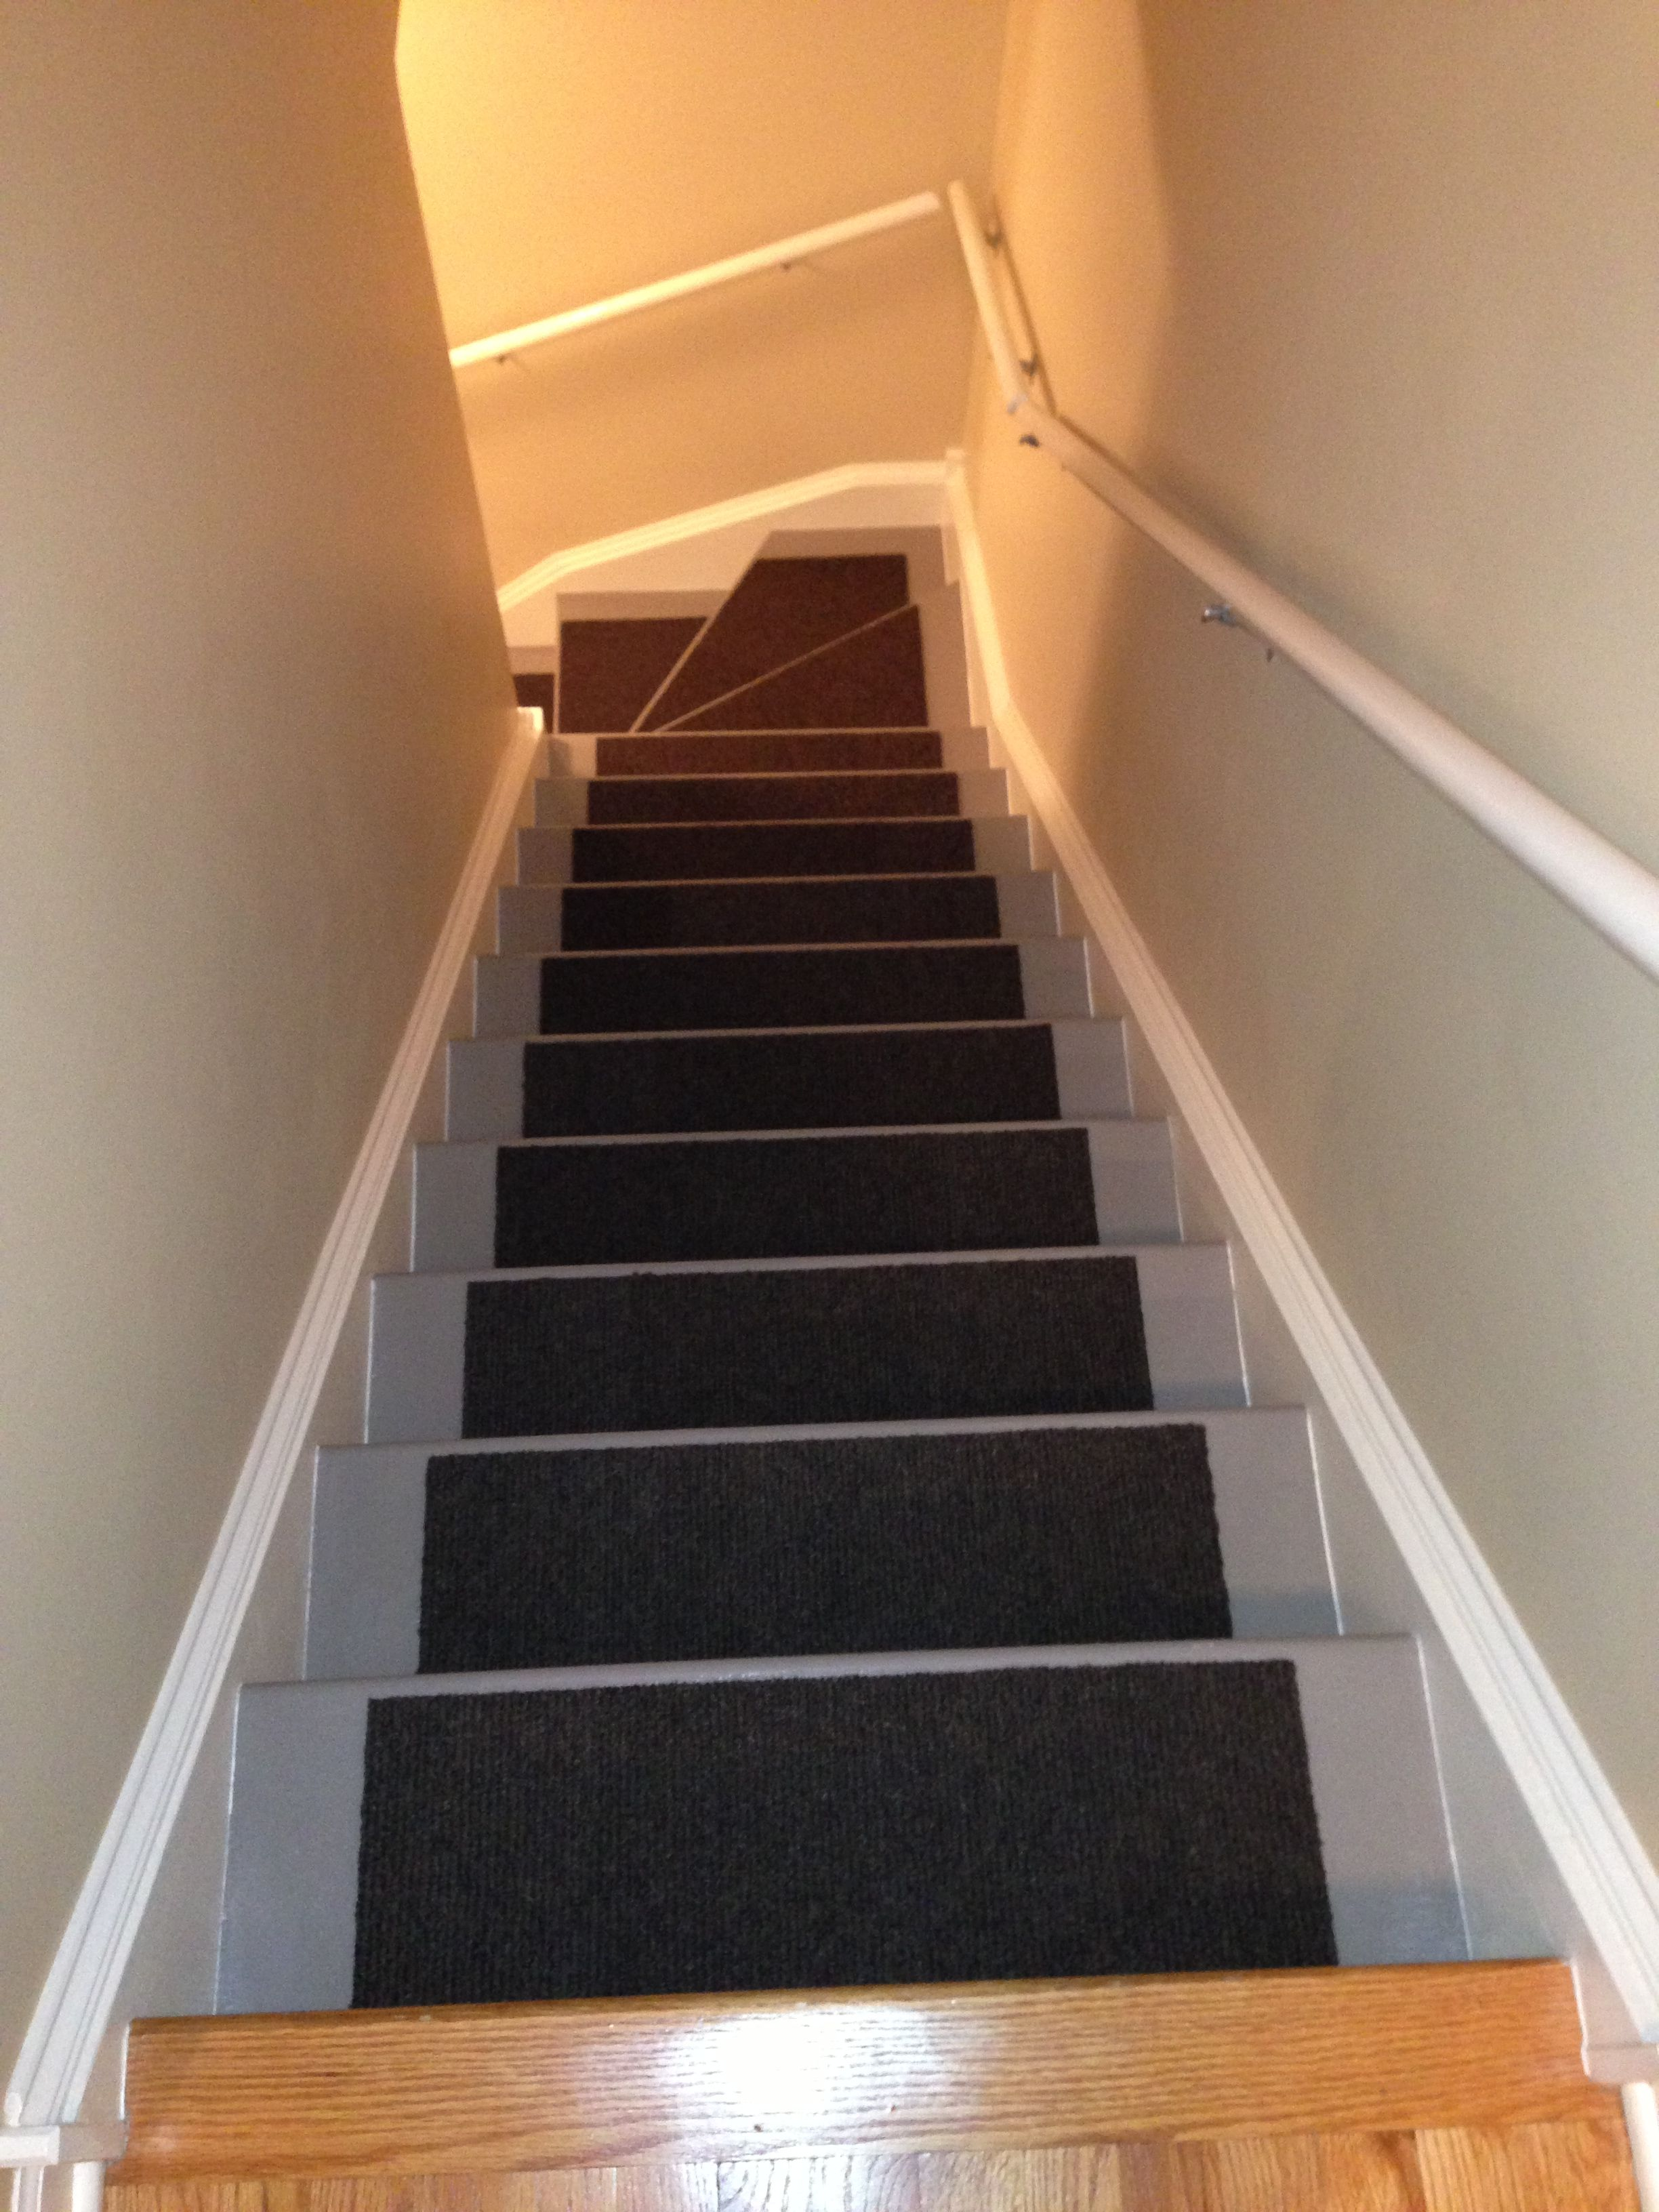 Best Flor Carpet On Stairs Painted Stairs Carpet Stairs Stairs 400 x 300